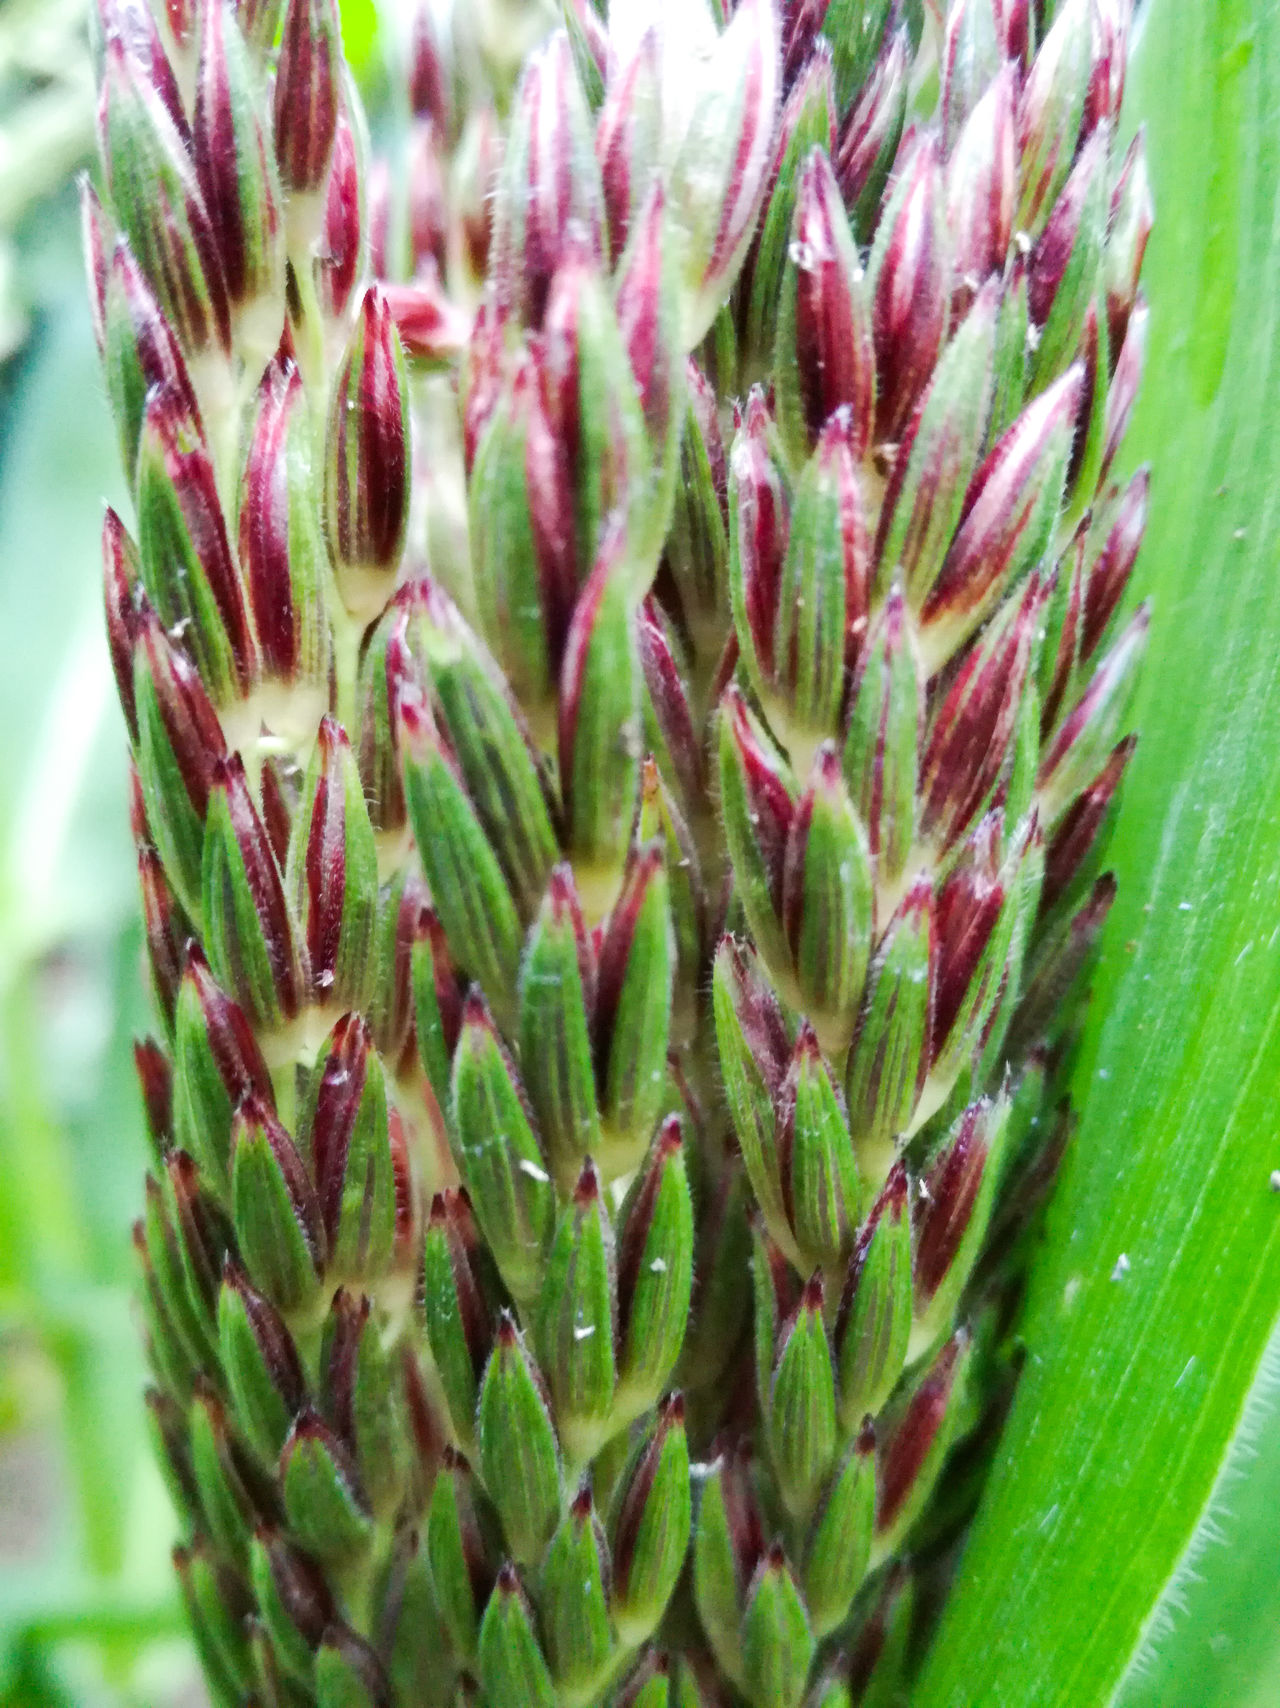 Male Flower of the Rainbow Corn plant, ready rain down its Pollen ... Growth Plant Close-up Green Color Sharp Corn Beauty In Nature Pollination Pollinating Agriculture Outdoors Day Garden Gardening Beauty In Nature